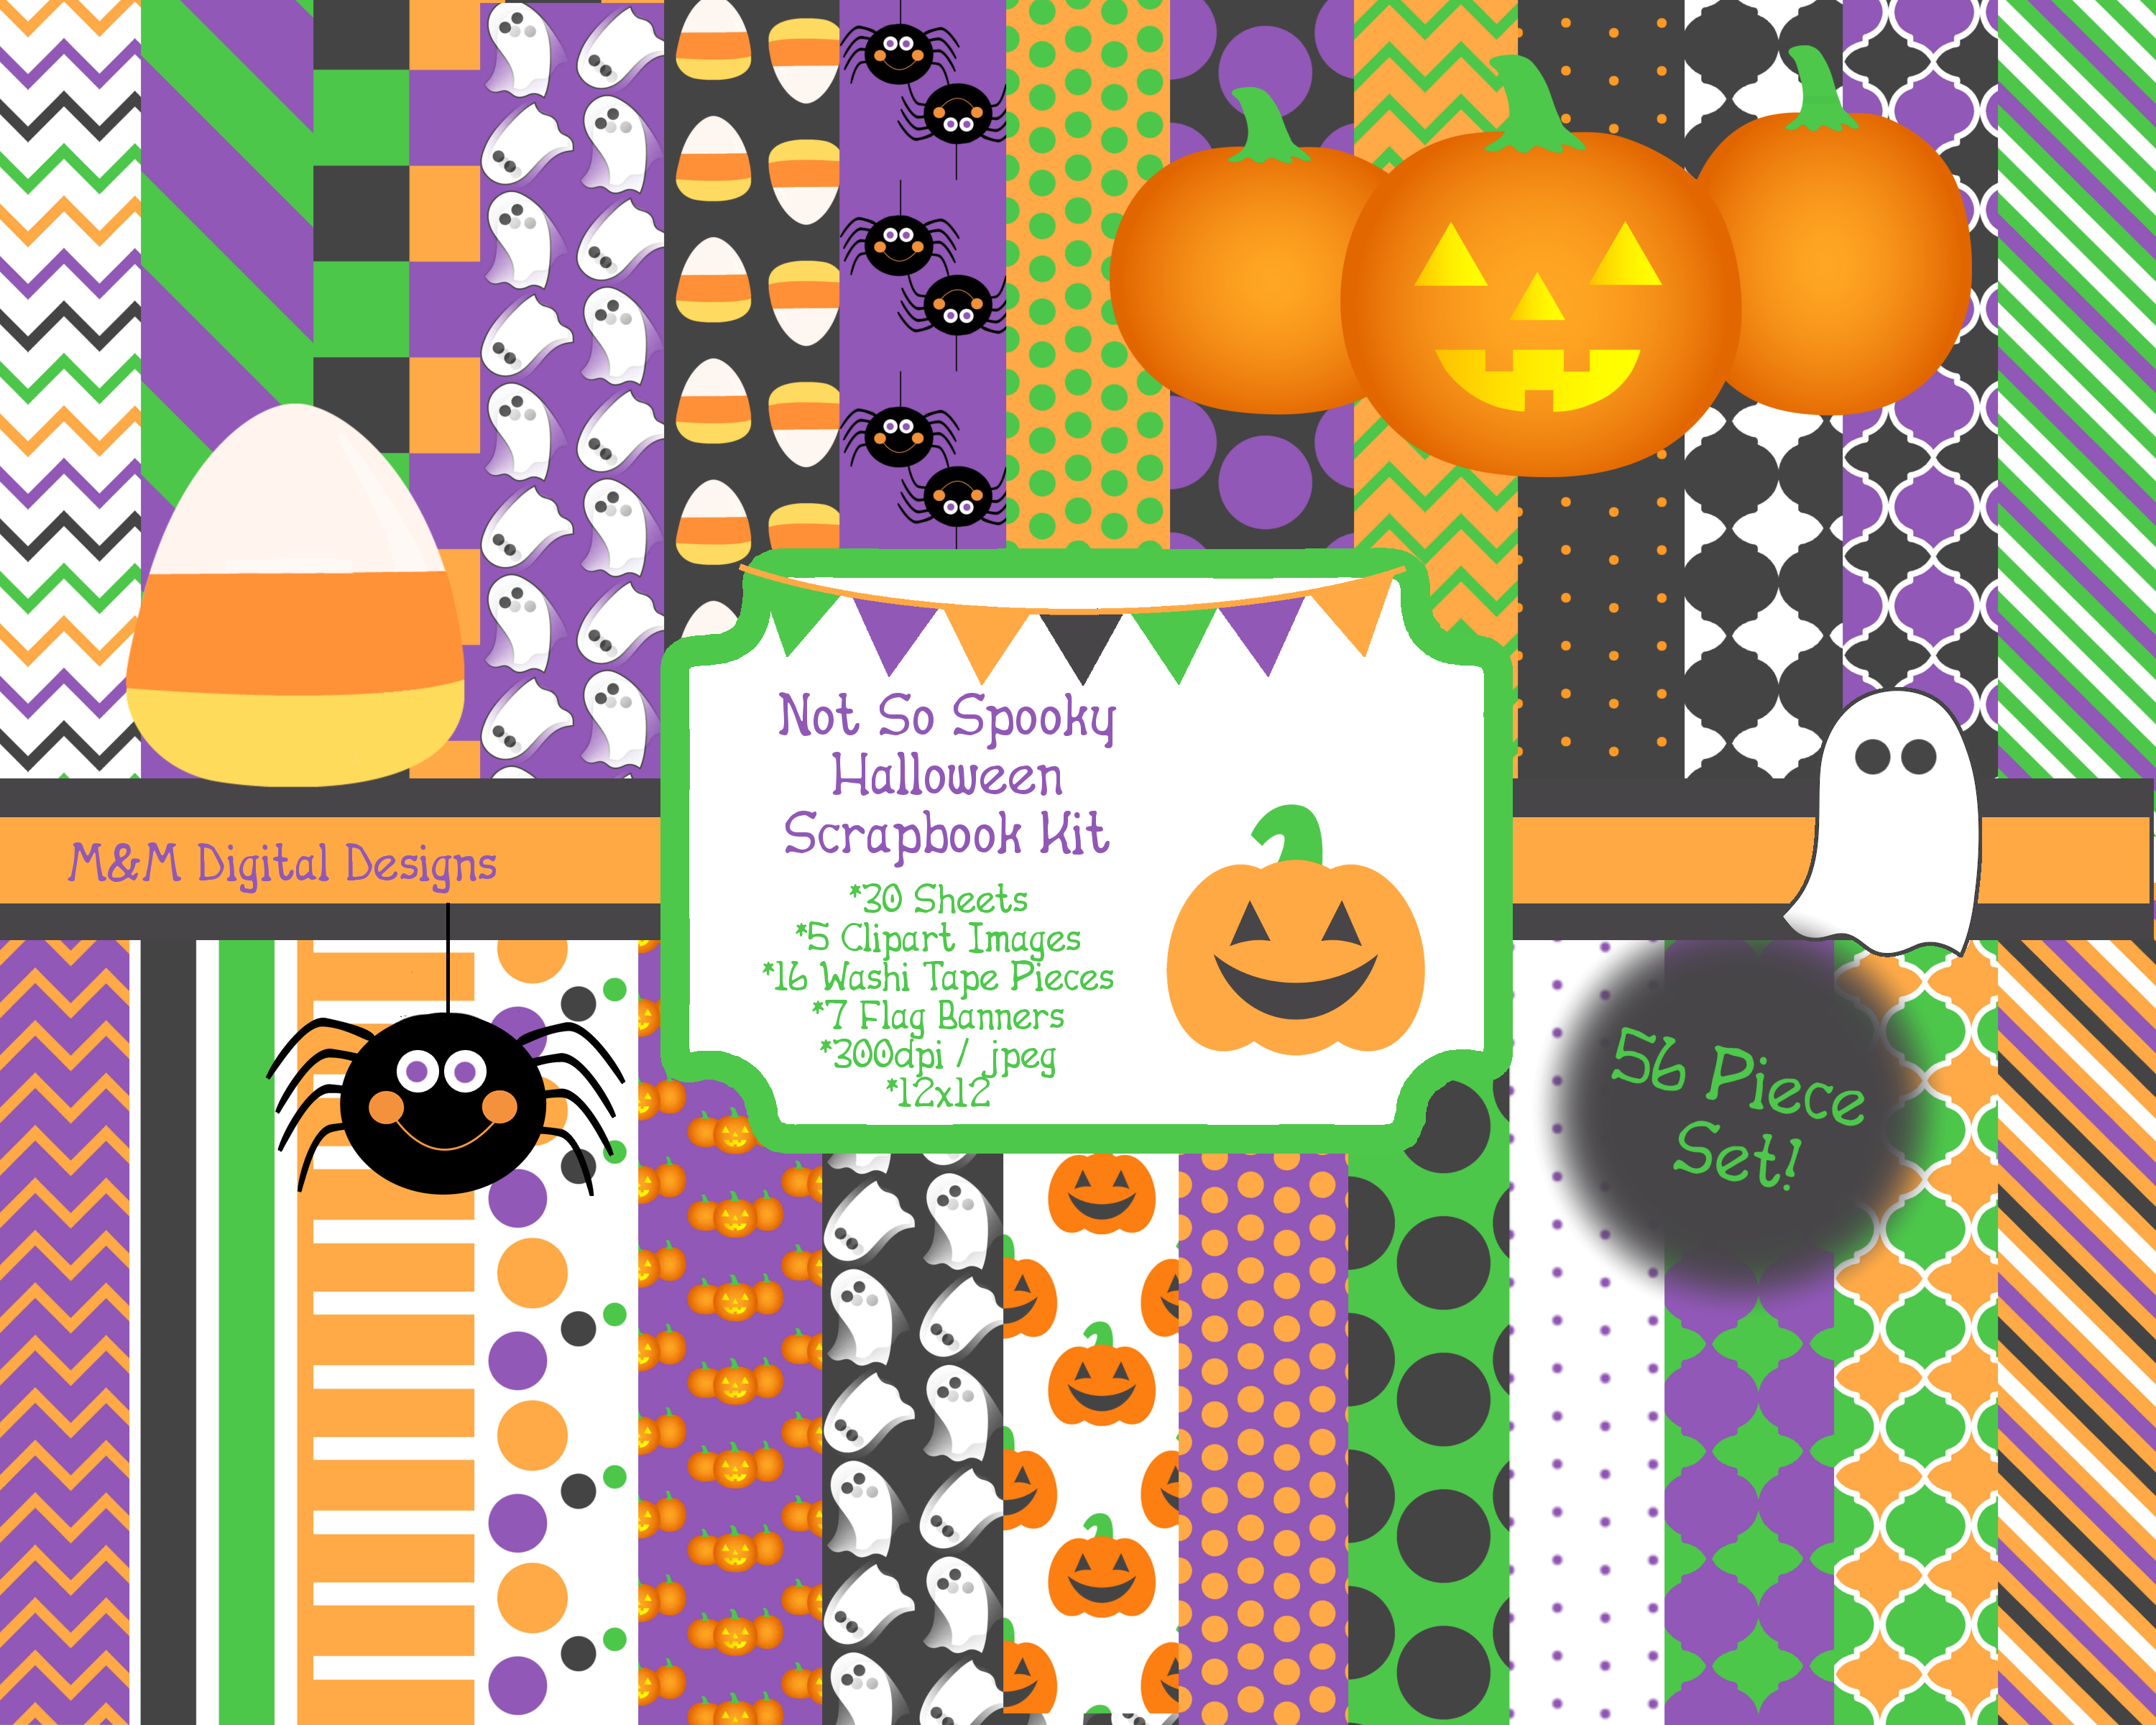 Not So Spooky Halloween Scrapbook Kit by MandMDigitalDesigns on Zibbet.